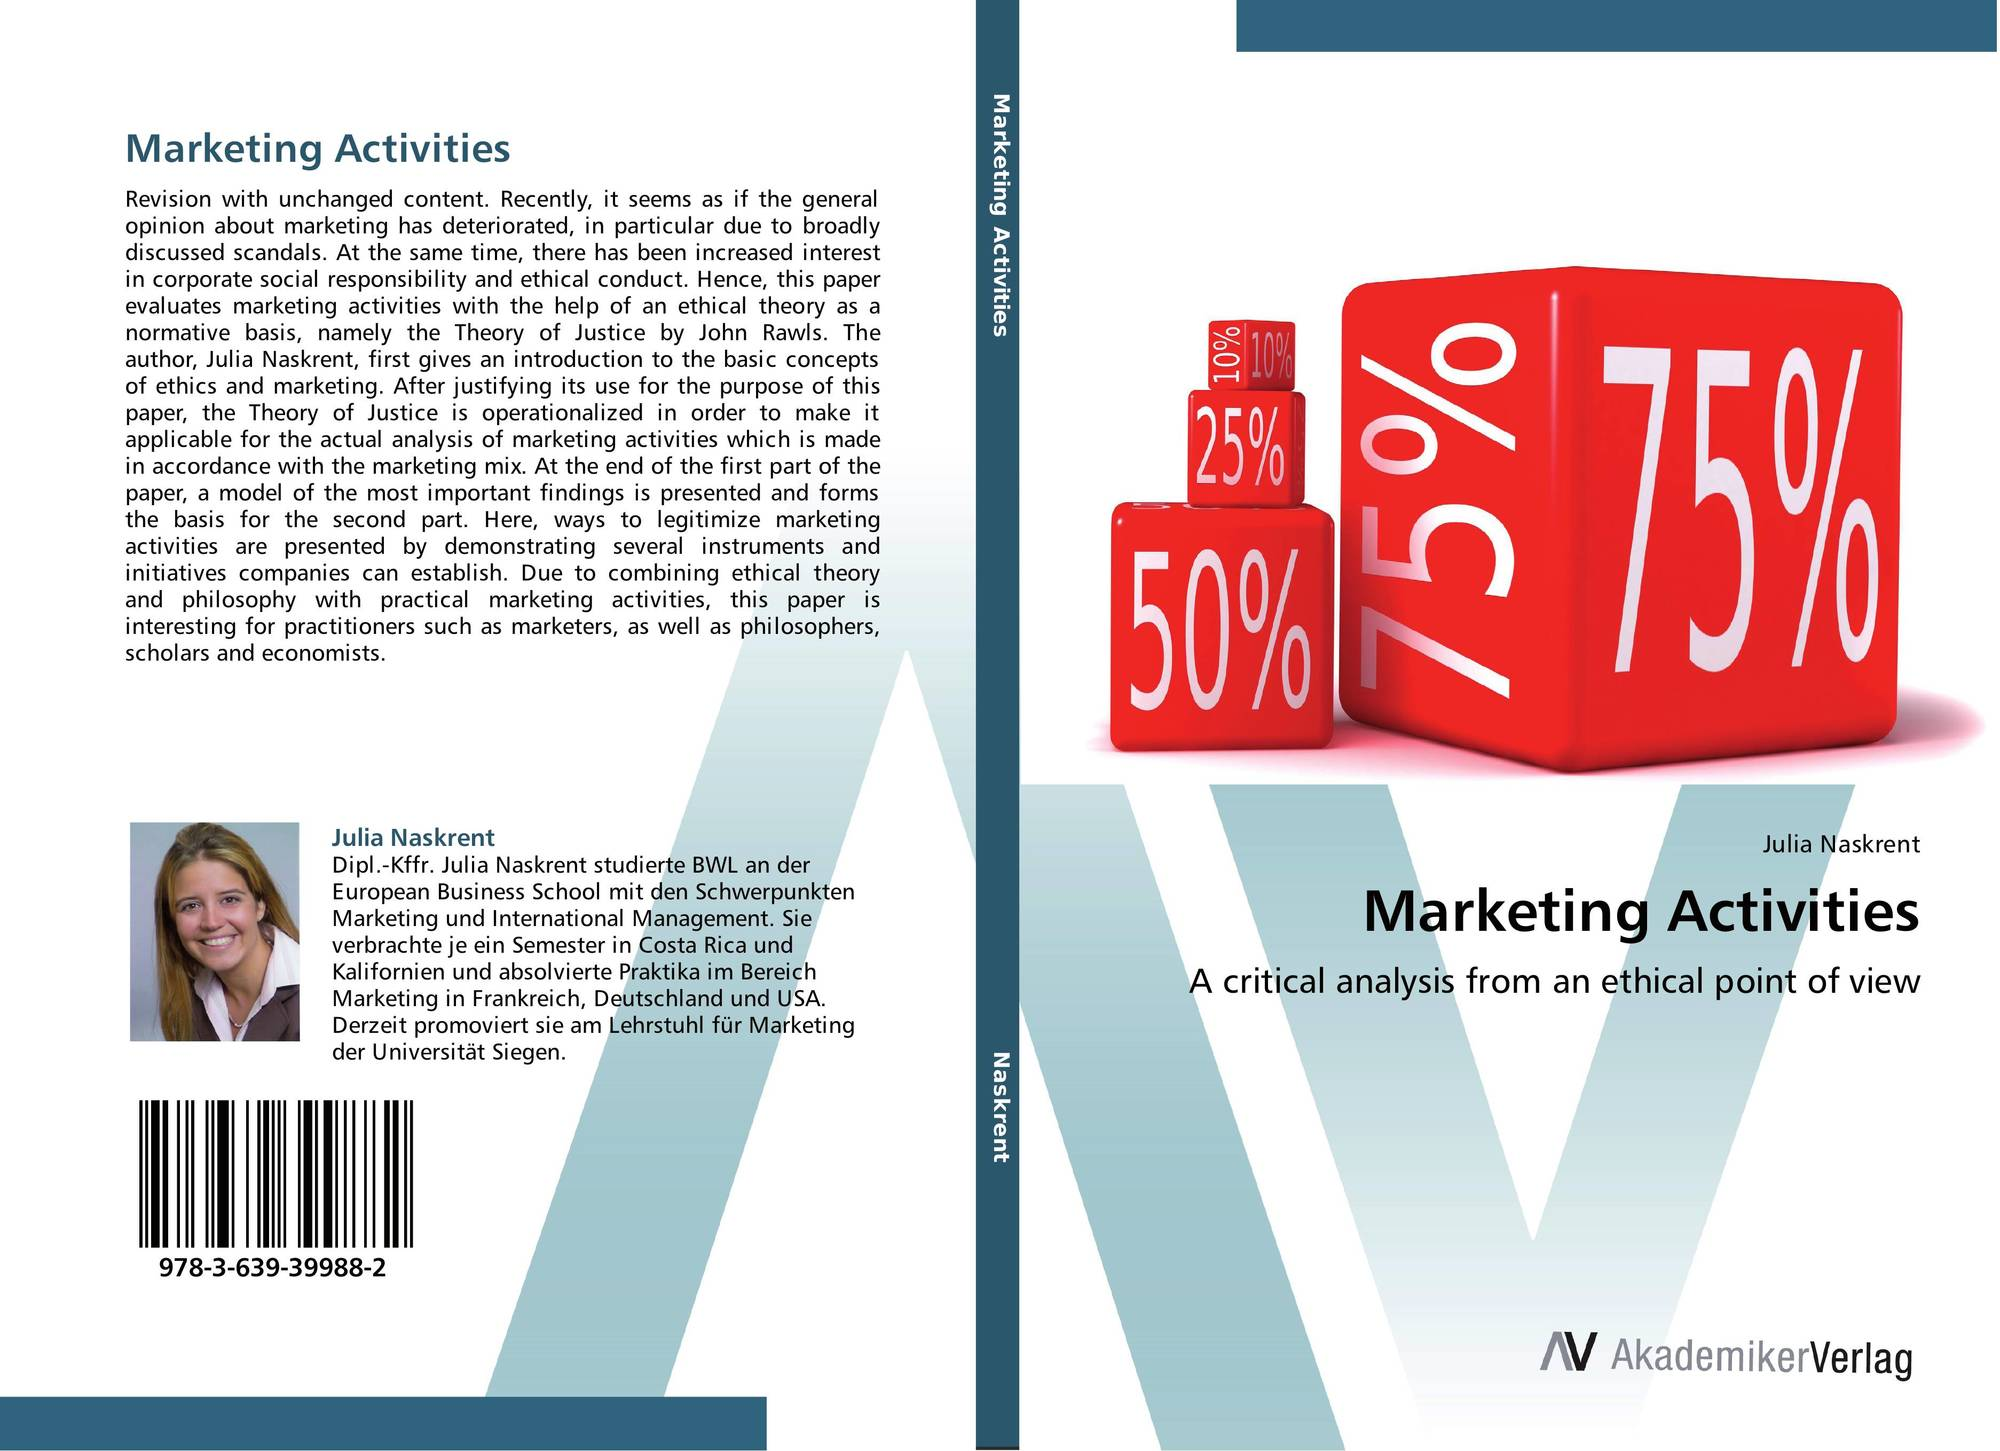 'critically discuss an established marketing theory Profound critique draws from critical theory and postmodern insights to question the social and political effects of strategic management strategy can be viewed as a set of.